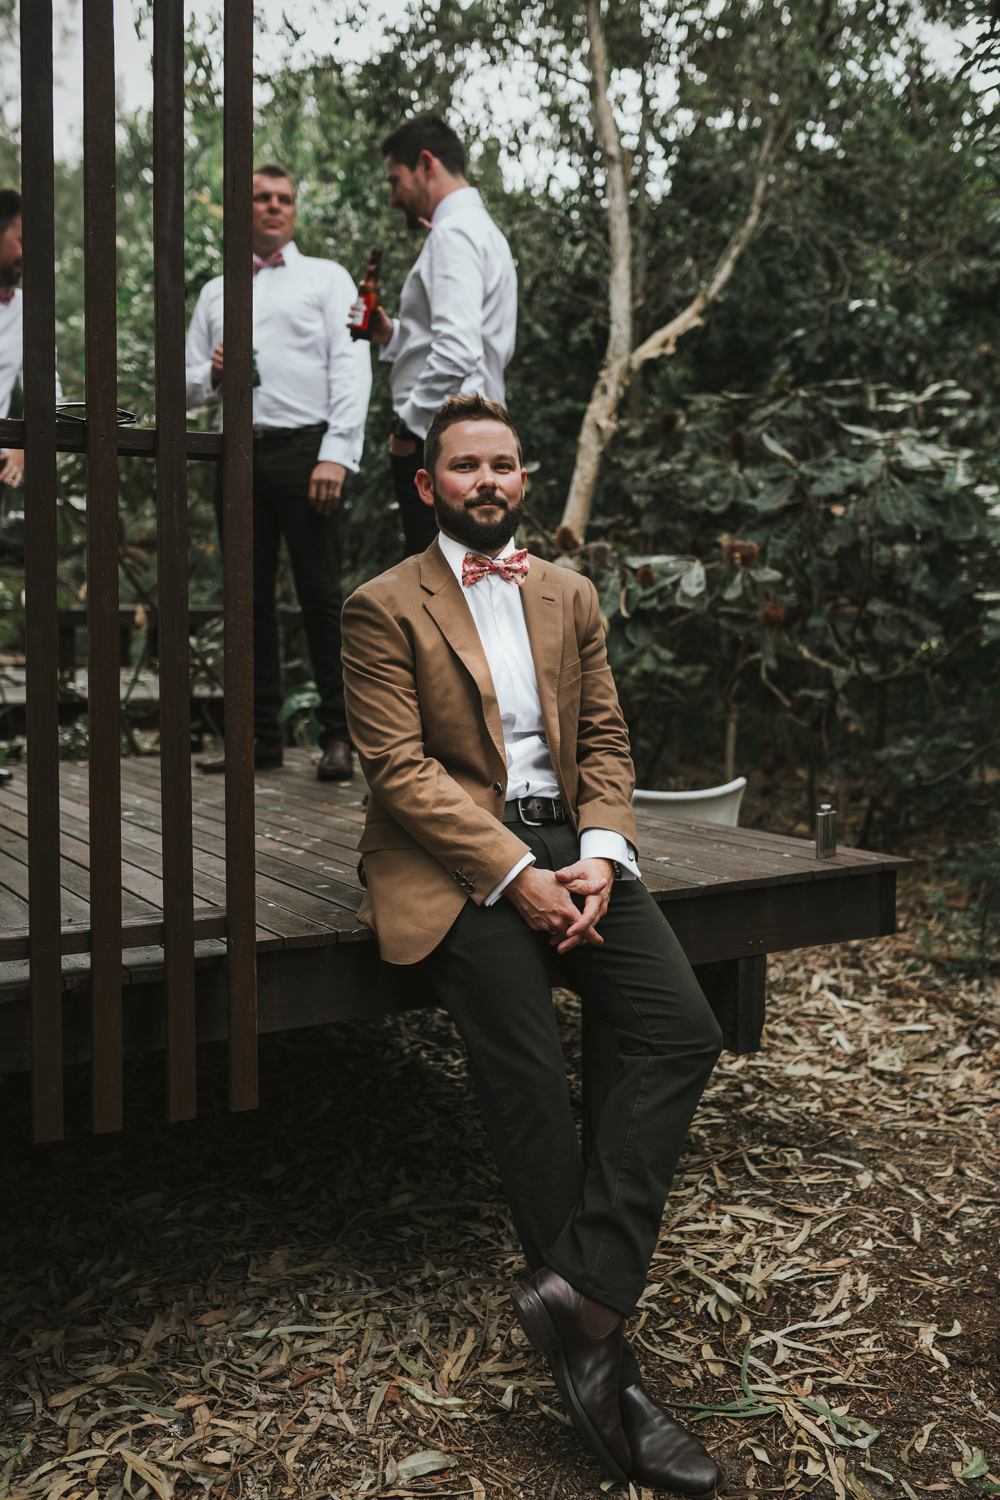 groom-portrait-wedding-photographer-siida-hobart.jpg